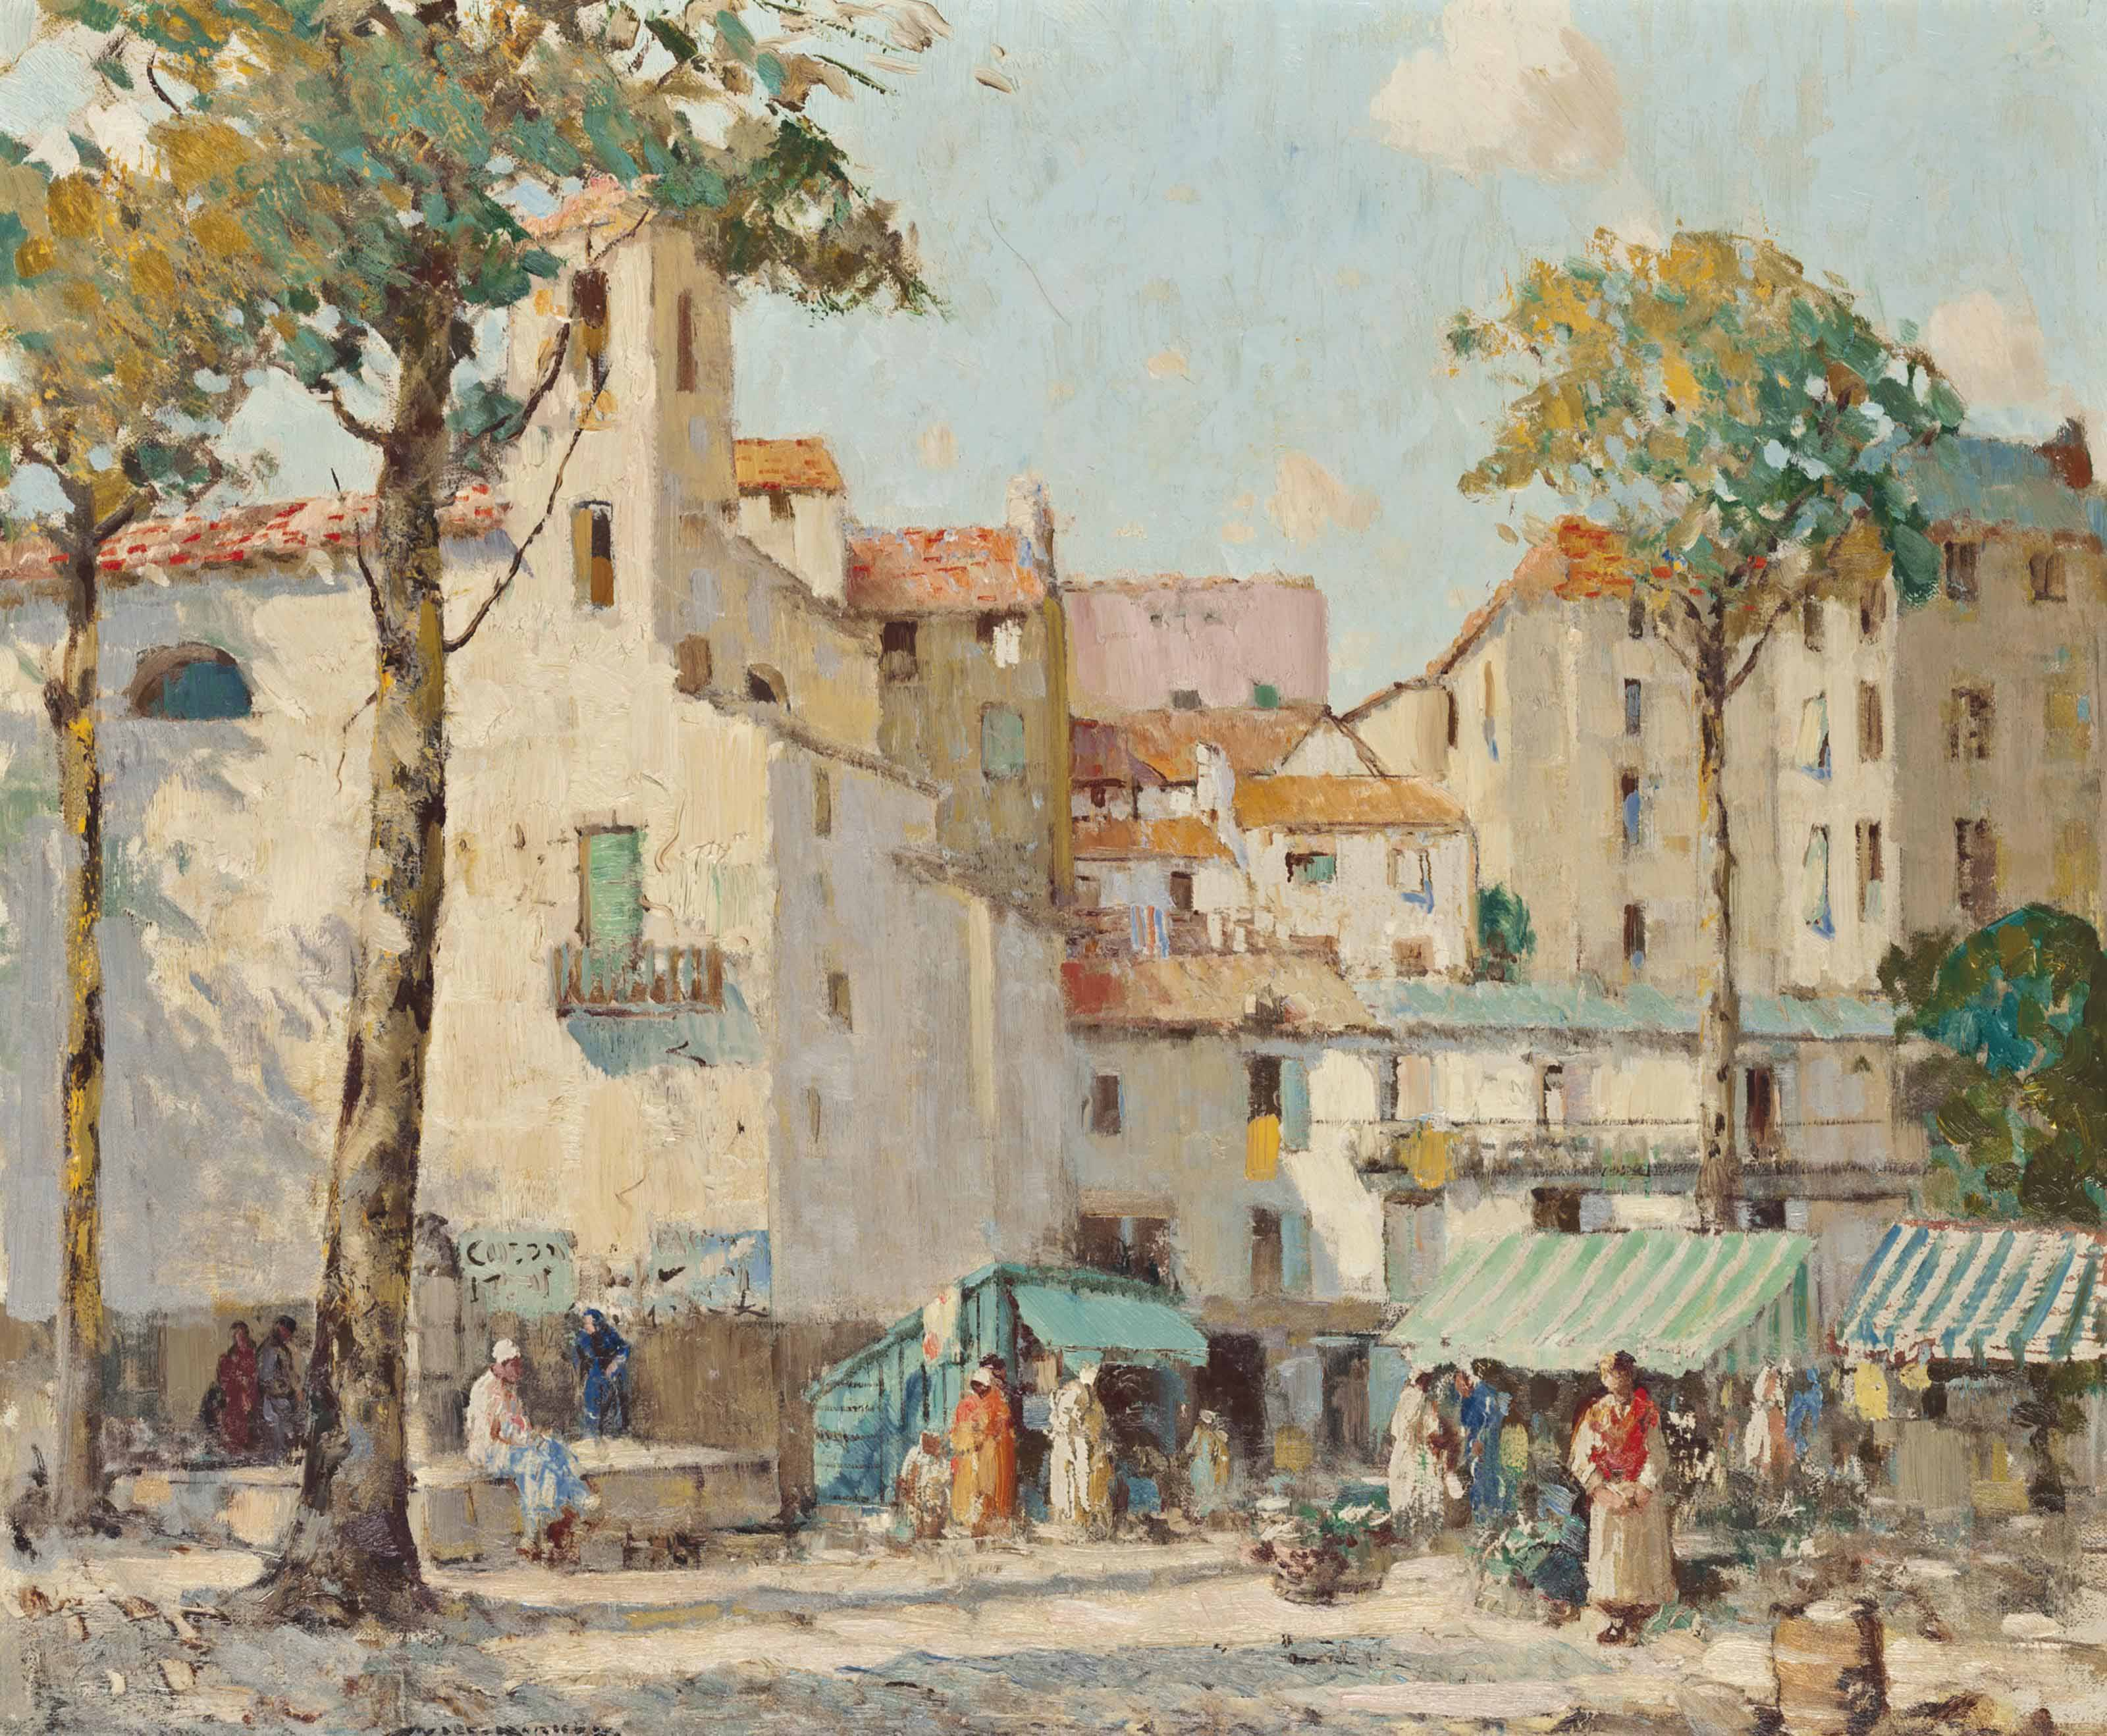 Market day, San Remo, Italy